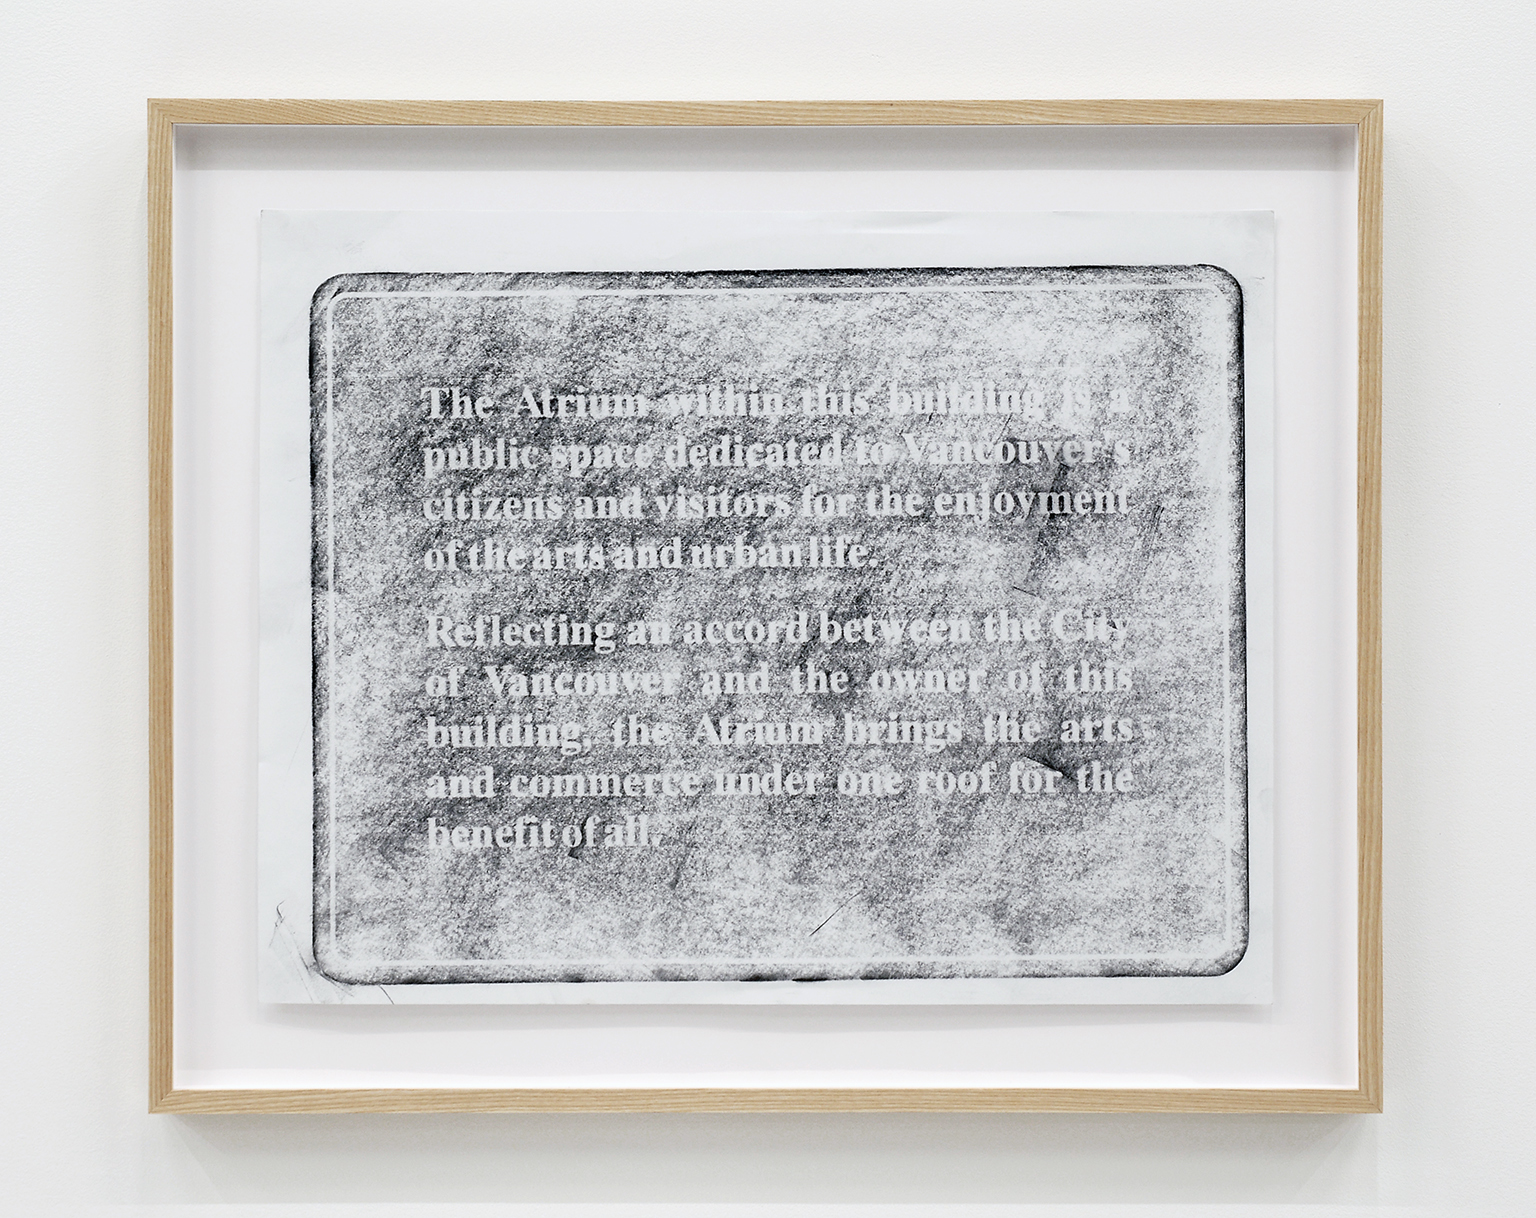 ​Alex Morrison, The Poetics of Grey (No. 14), 2007, graphite on paper, 26 x 32 in. (65 x 80 cm) by